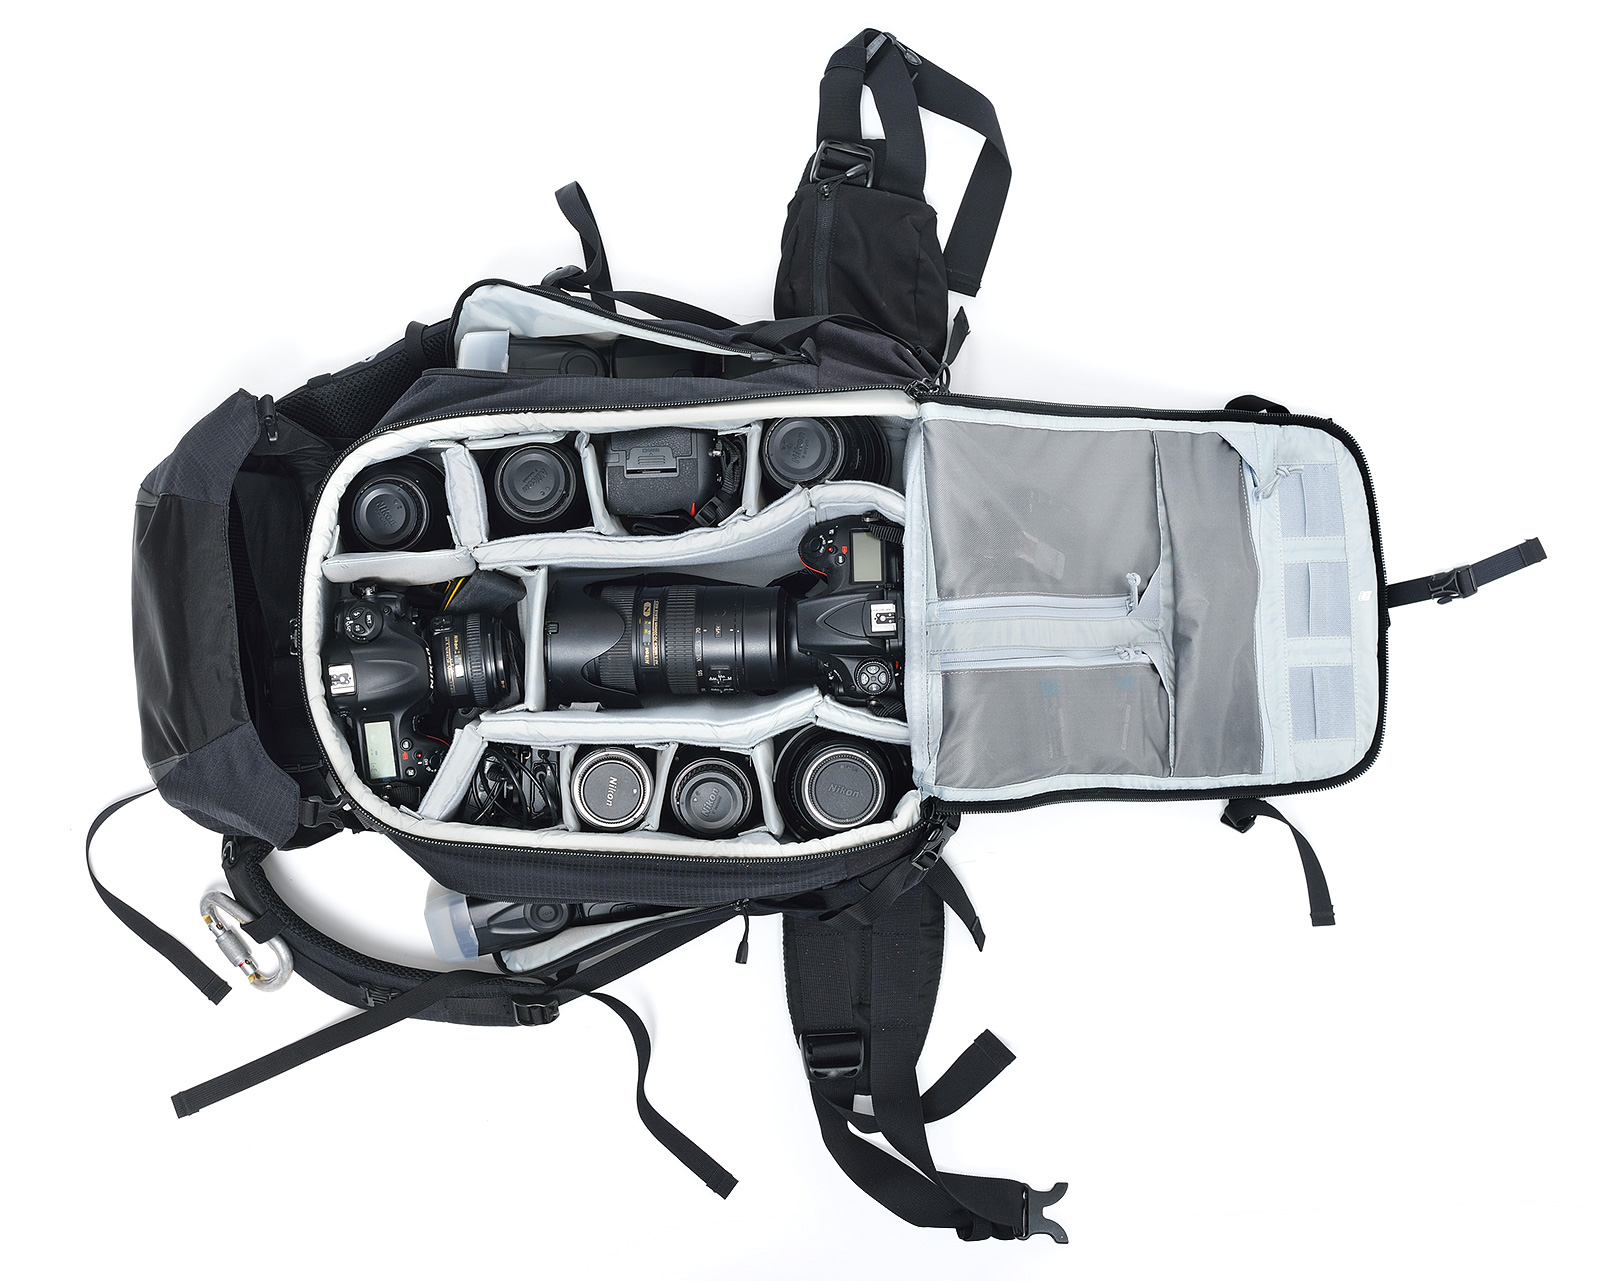 Accessories Bags Trolley Bag Foldable Broncolor If My Bag Could Talk With Kristian Bogner The Lowepro Blog